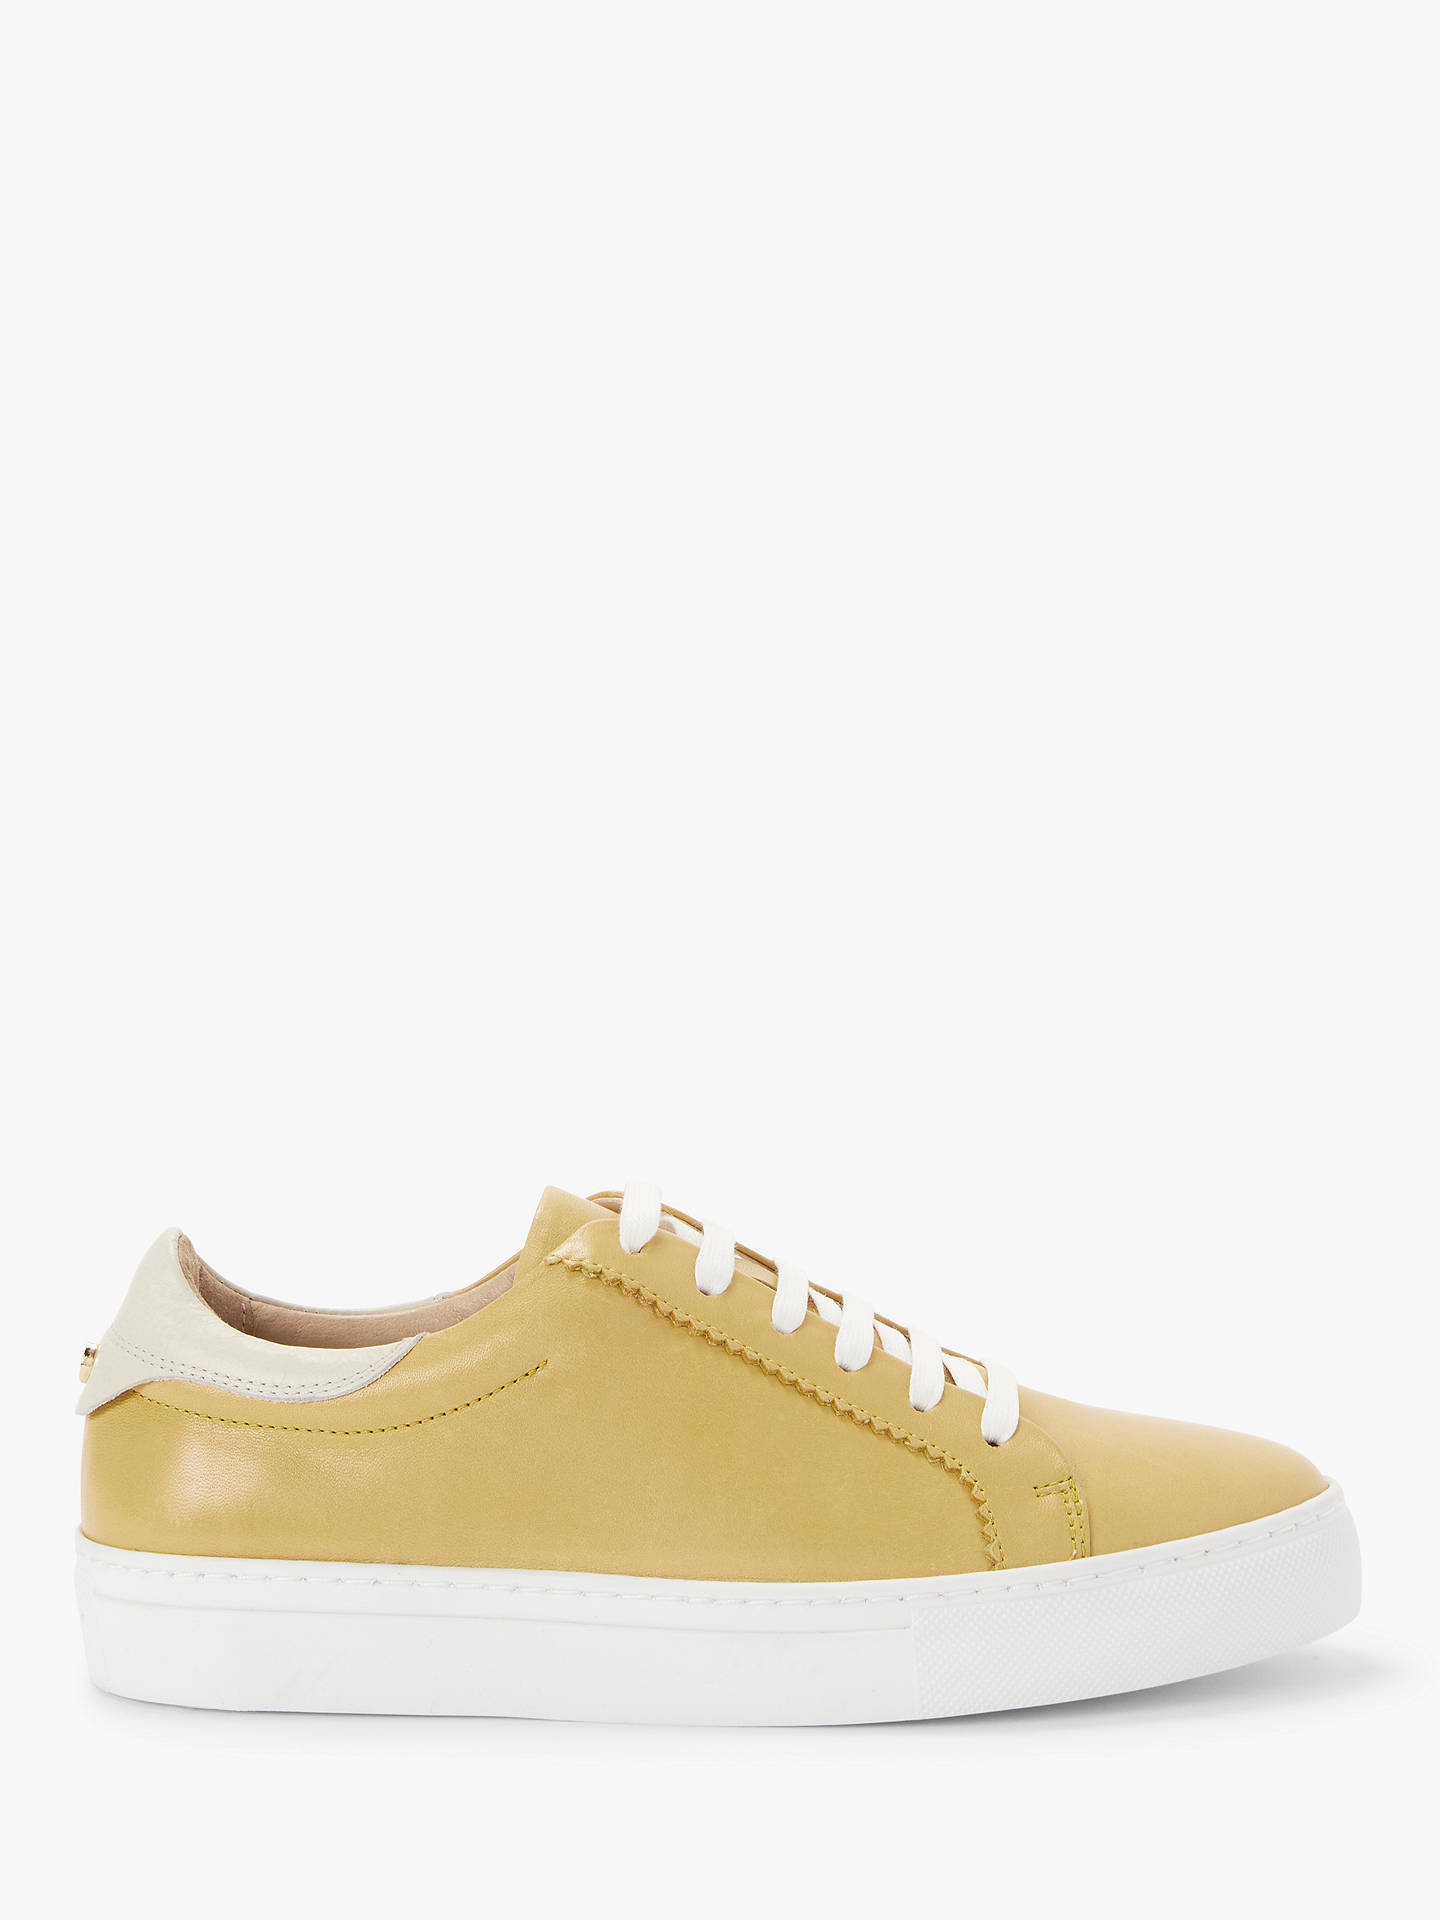 John Lewis & Partners Florence Leather Trainers at John